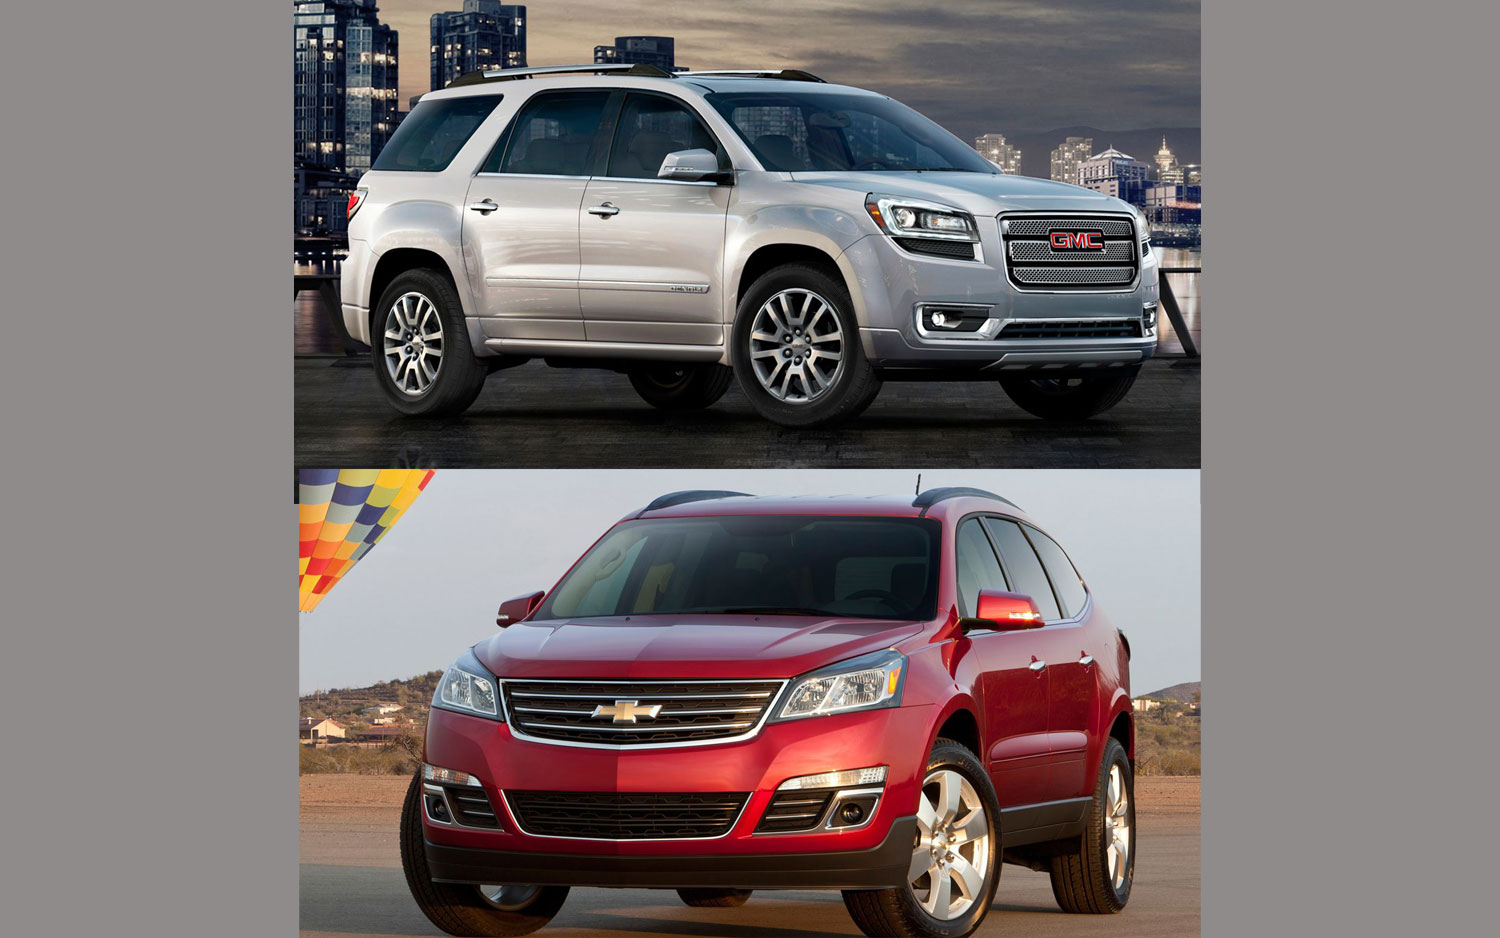 gm crossover matchup 2013 chevy traverse vs 2013 gmc acadia. Black Bedroom Furniture Sets. Home Design Ideas